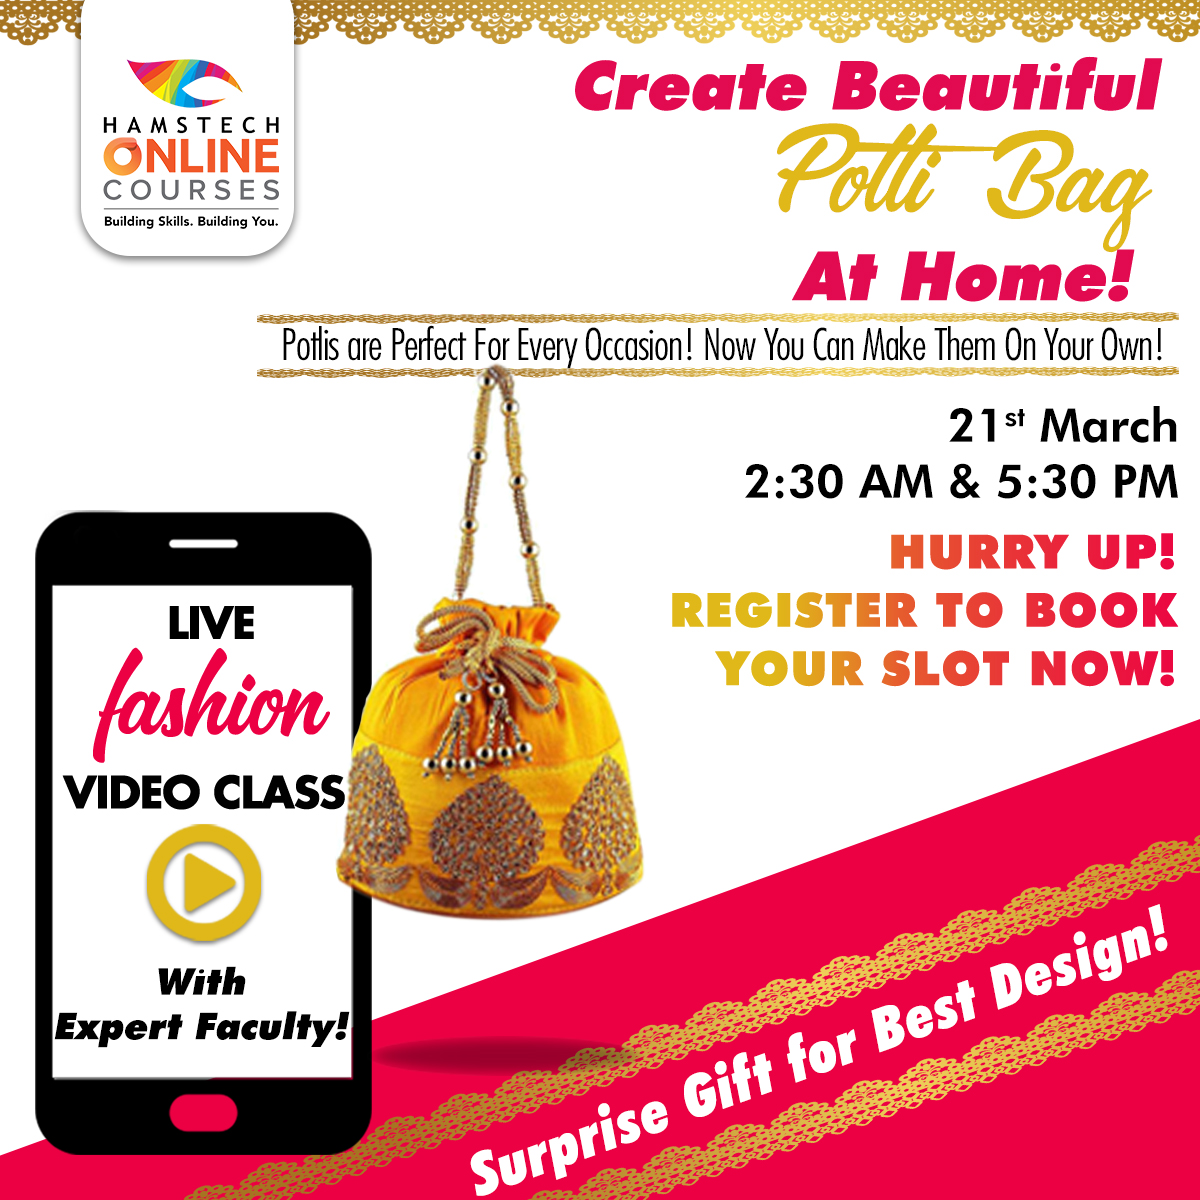 Hunar Online Courses On Twitter Now Learn To Design Unique Potlibags From Home Be A Part Of Hamstech Online S Interesting Live Class On 21st March And Learn The Art Of Creating Attractive